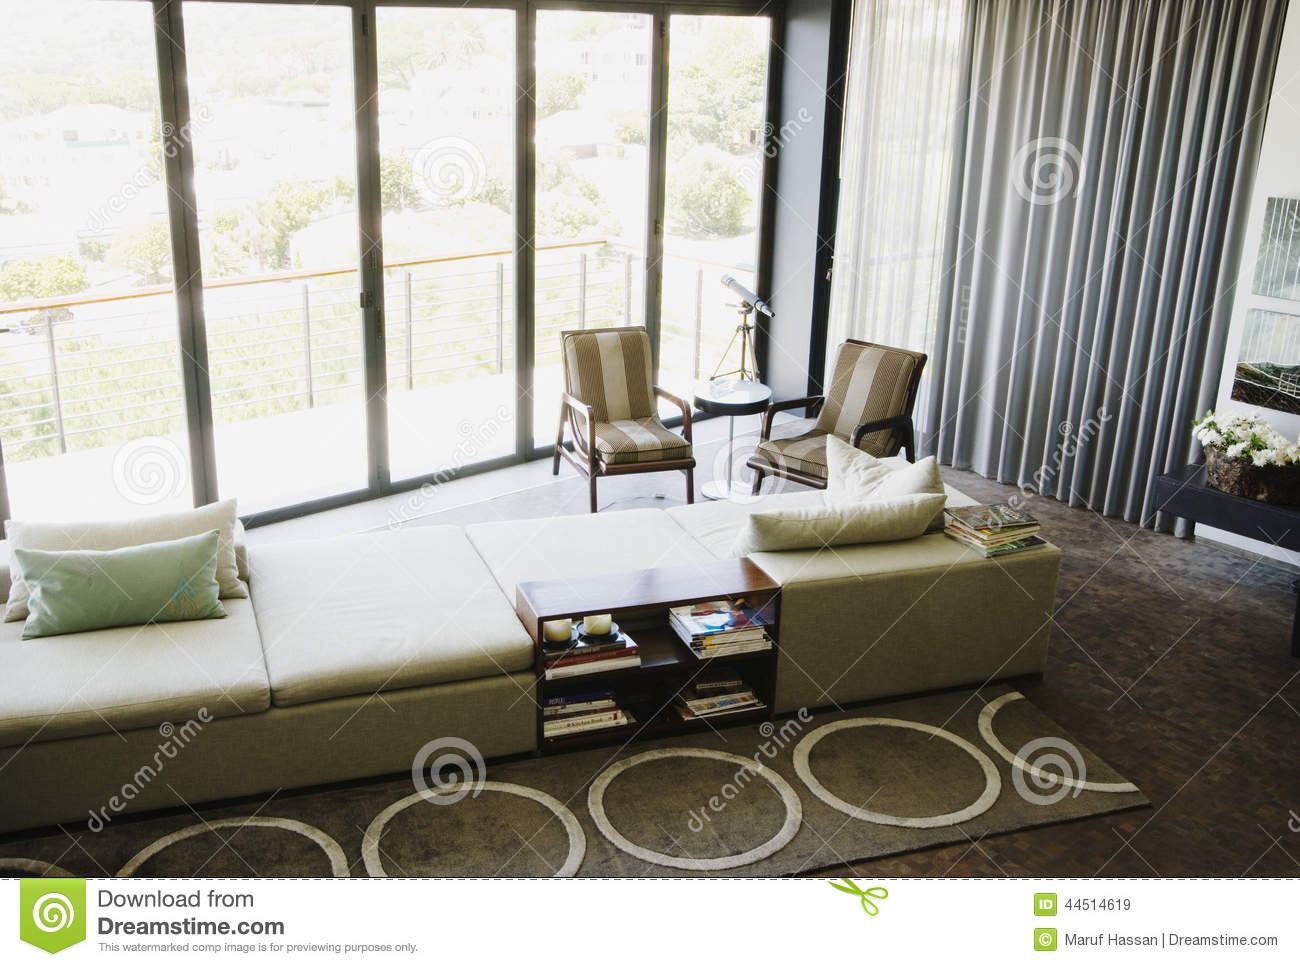 Download Modern Fireplace With Showpiece Stock Image   Image Of Bedroom,  Dining: 44514619